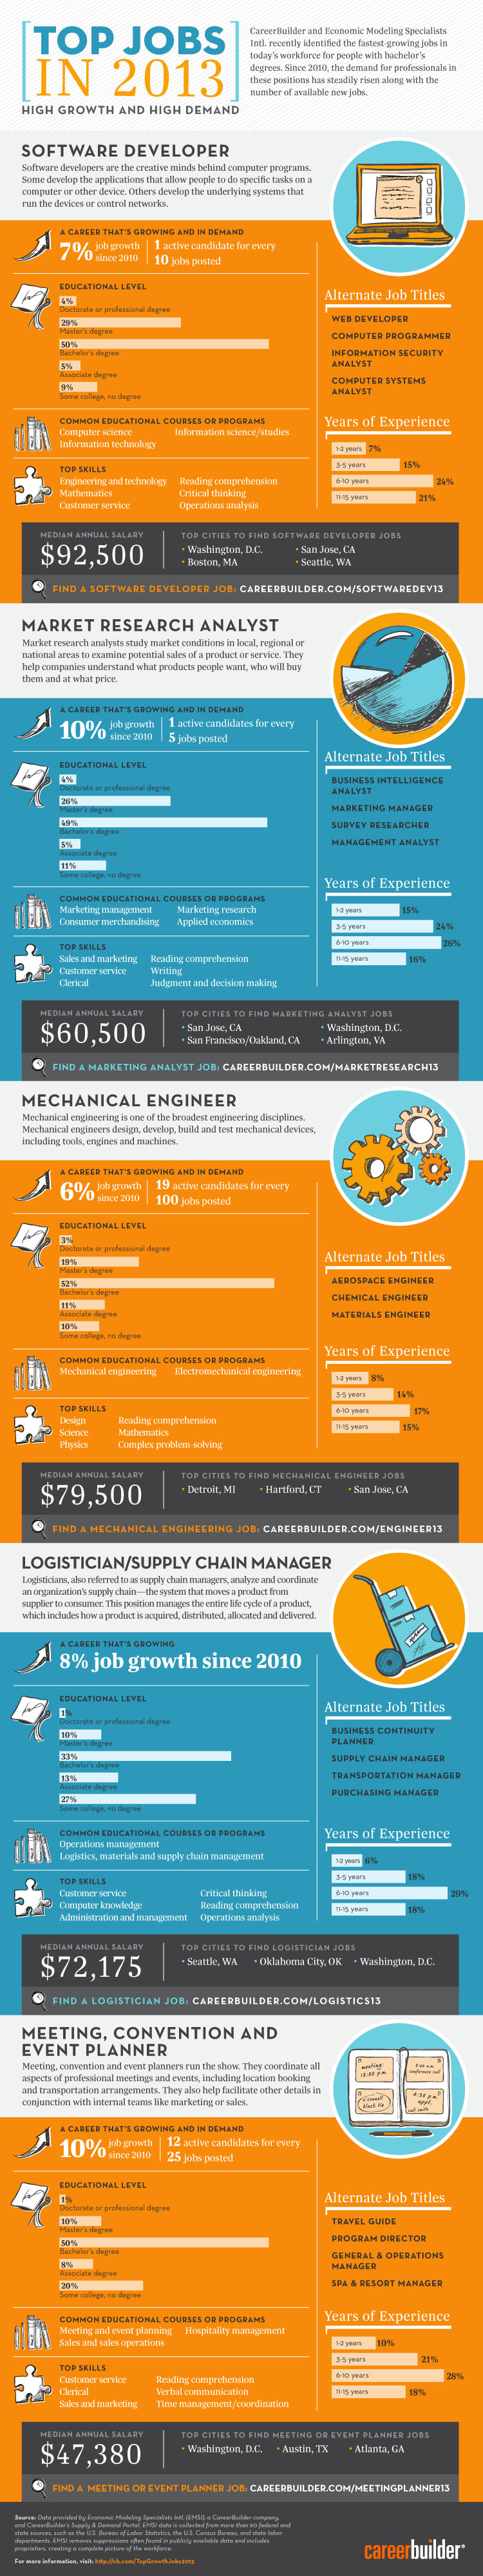 Best Jobs to look out for in the year 2013